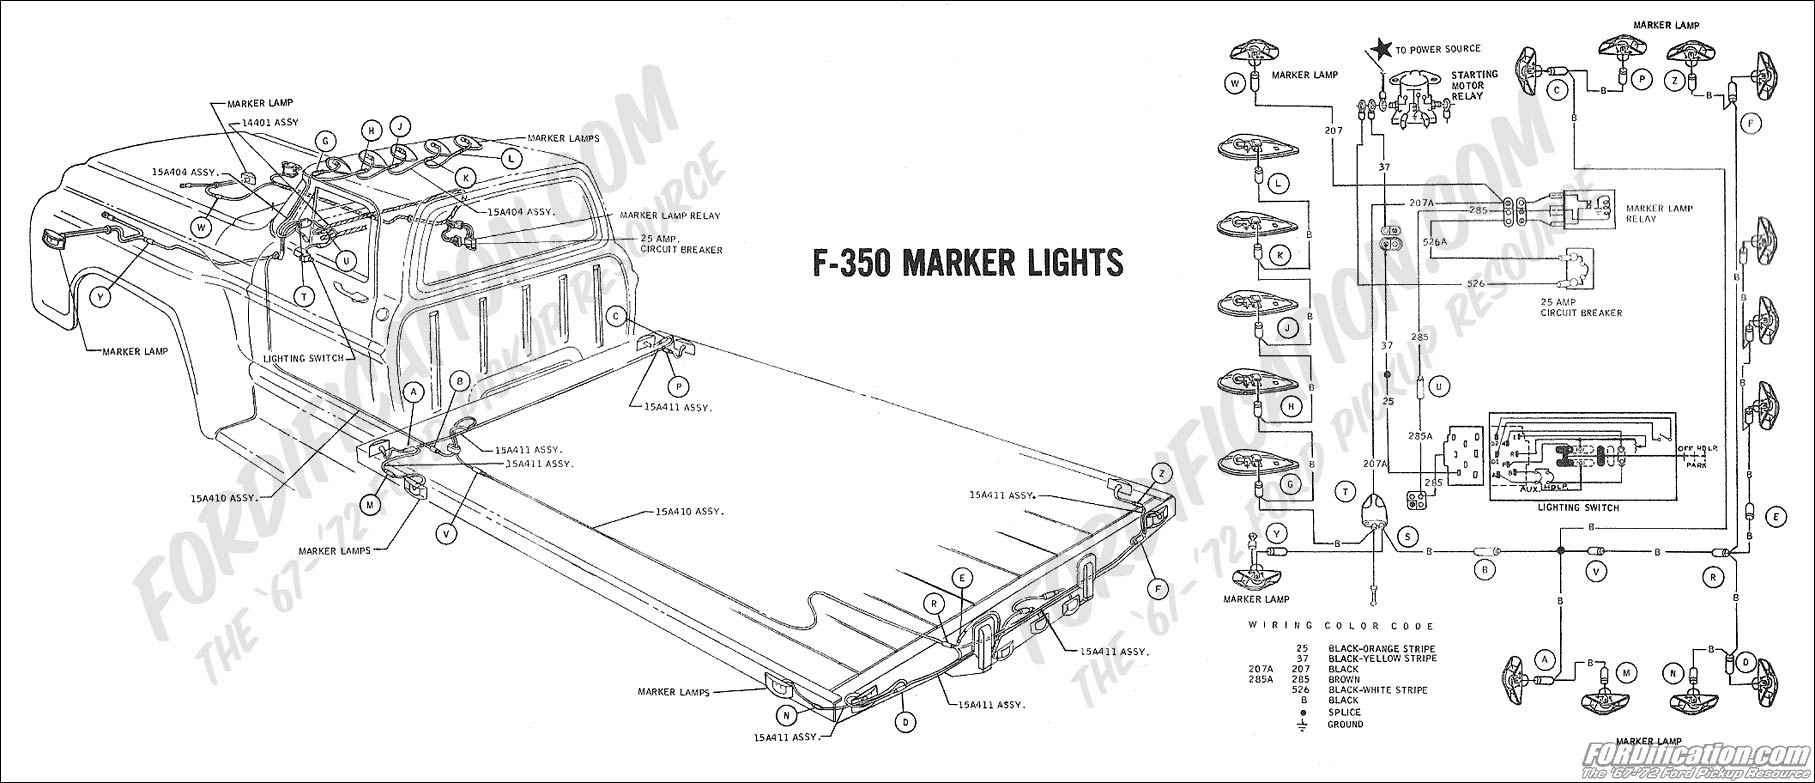 1973 F250 Wiring Diagram, 1973, Get Free Image About